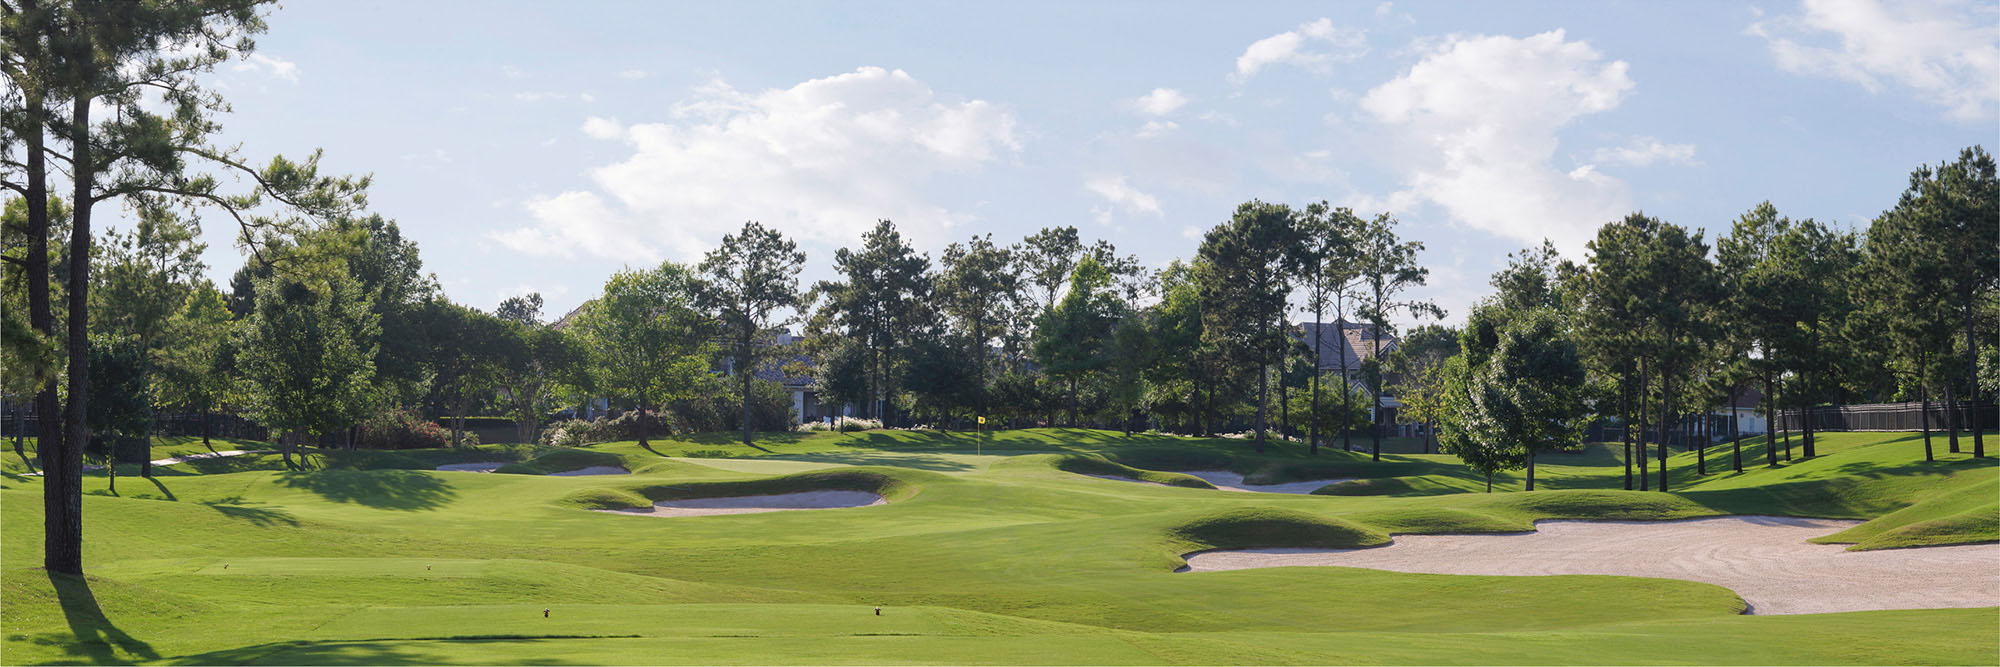 Golf Course Image - Royal Oaks No. 8